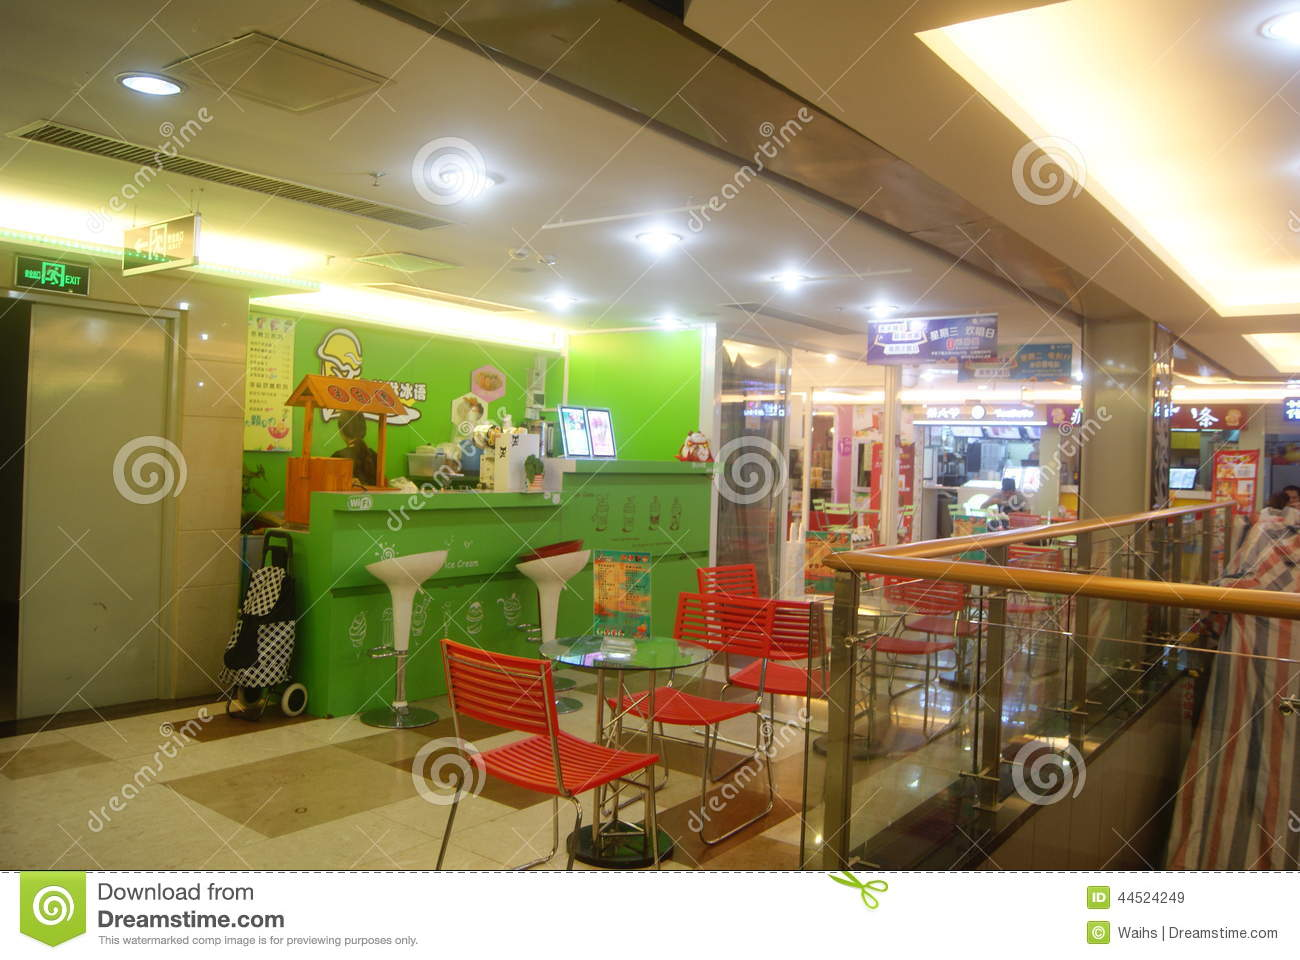 Shenzhen china snack bar editorial stock image image for Bar food yummy